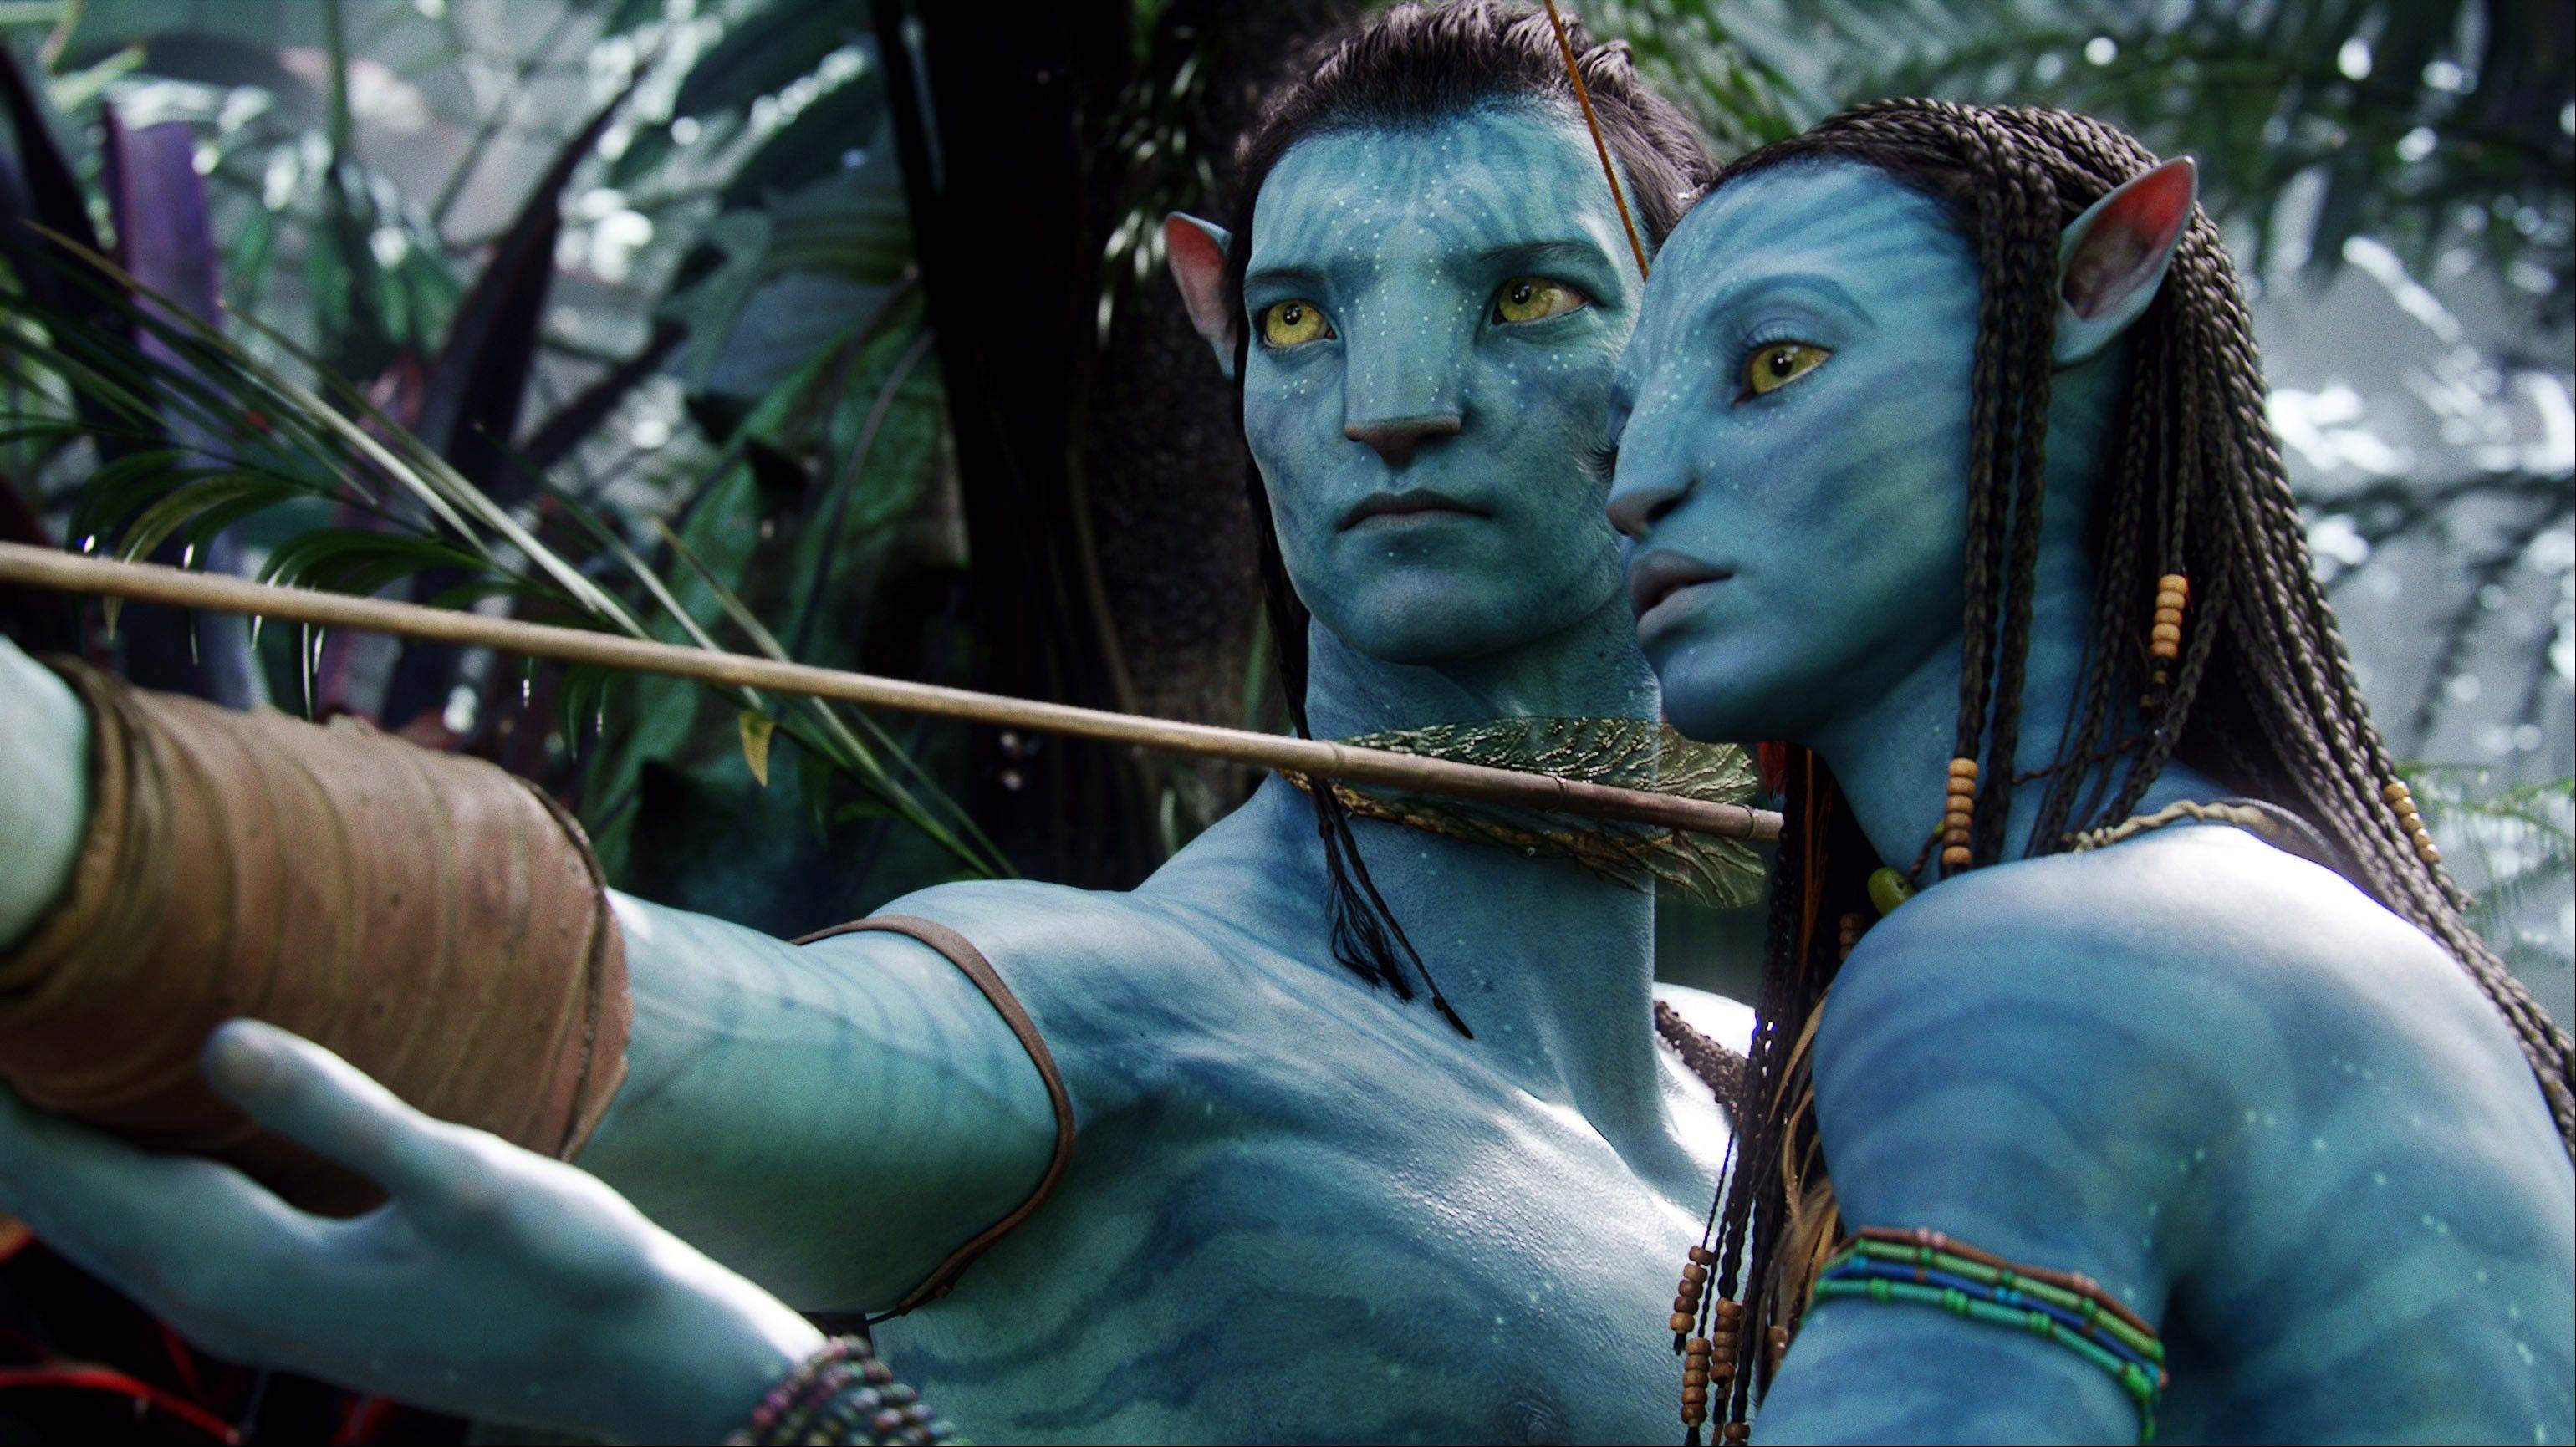 Director James Cameron announced plans to shoot and produce the next three �Avatar� sequels largely in New Zealand. What Cameron gets out of the deal is a 25 percent rebate on production costs, as long as his company spends at least $413 million on the three films.